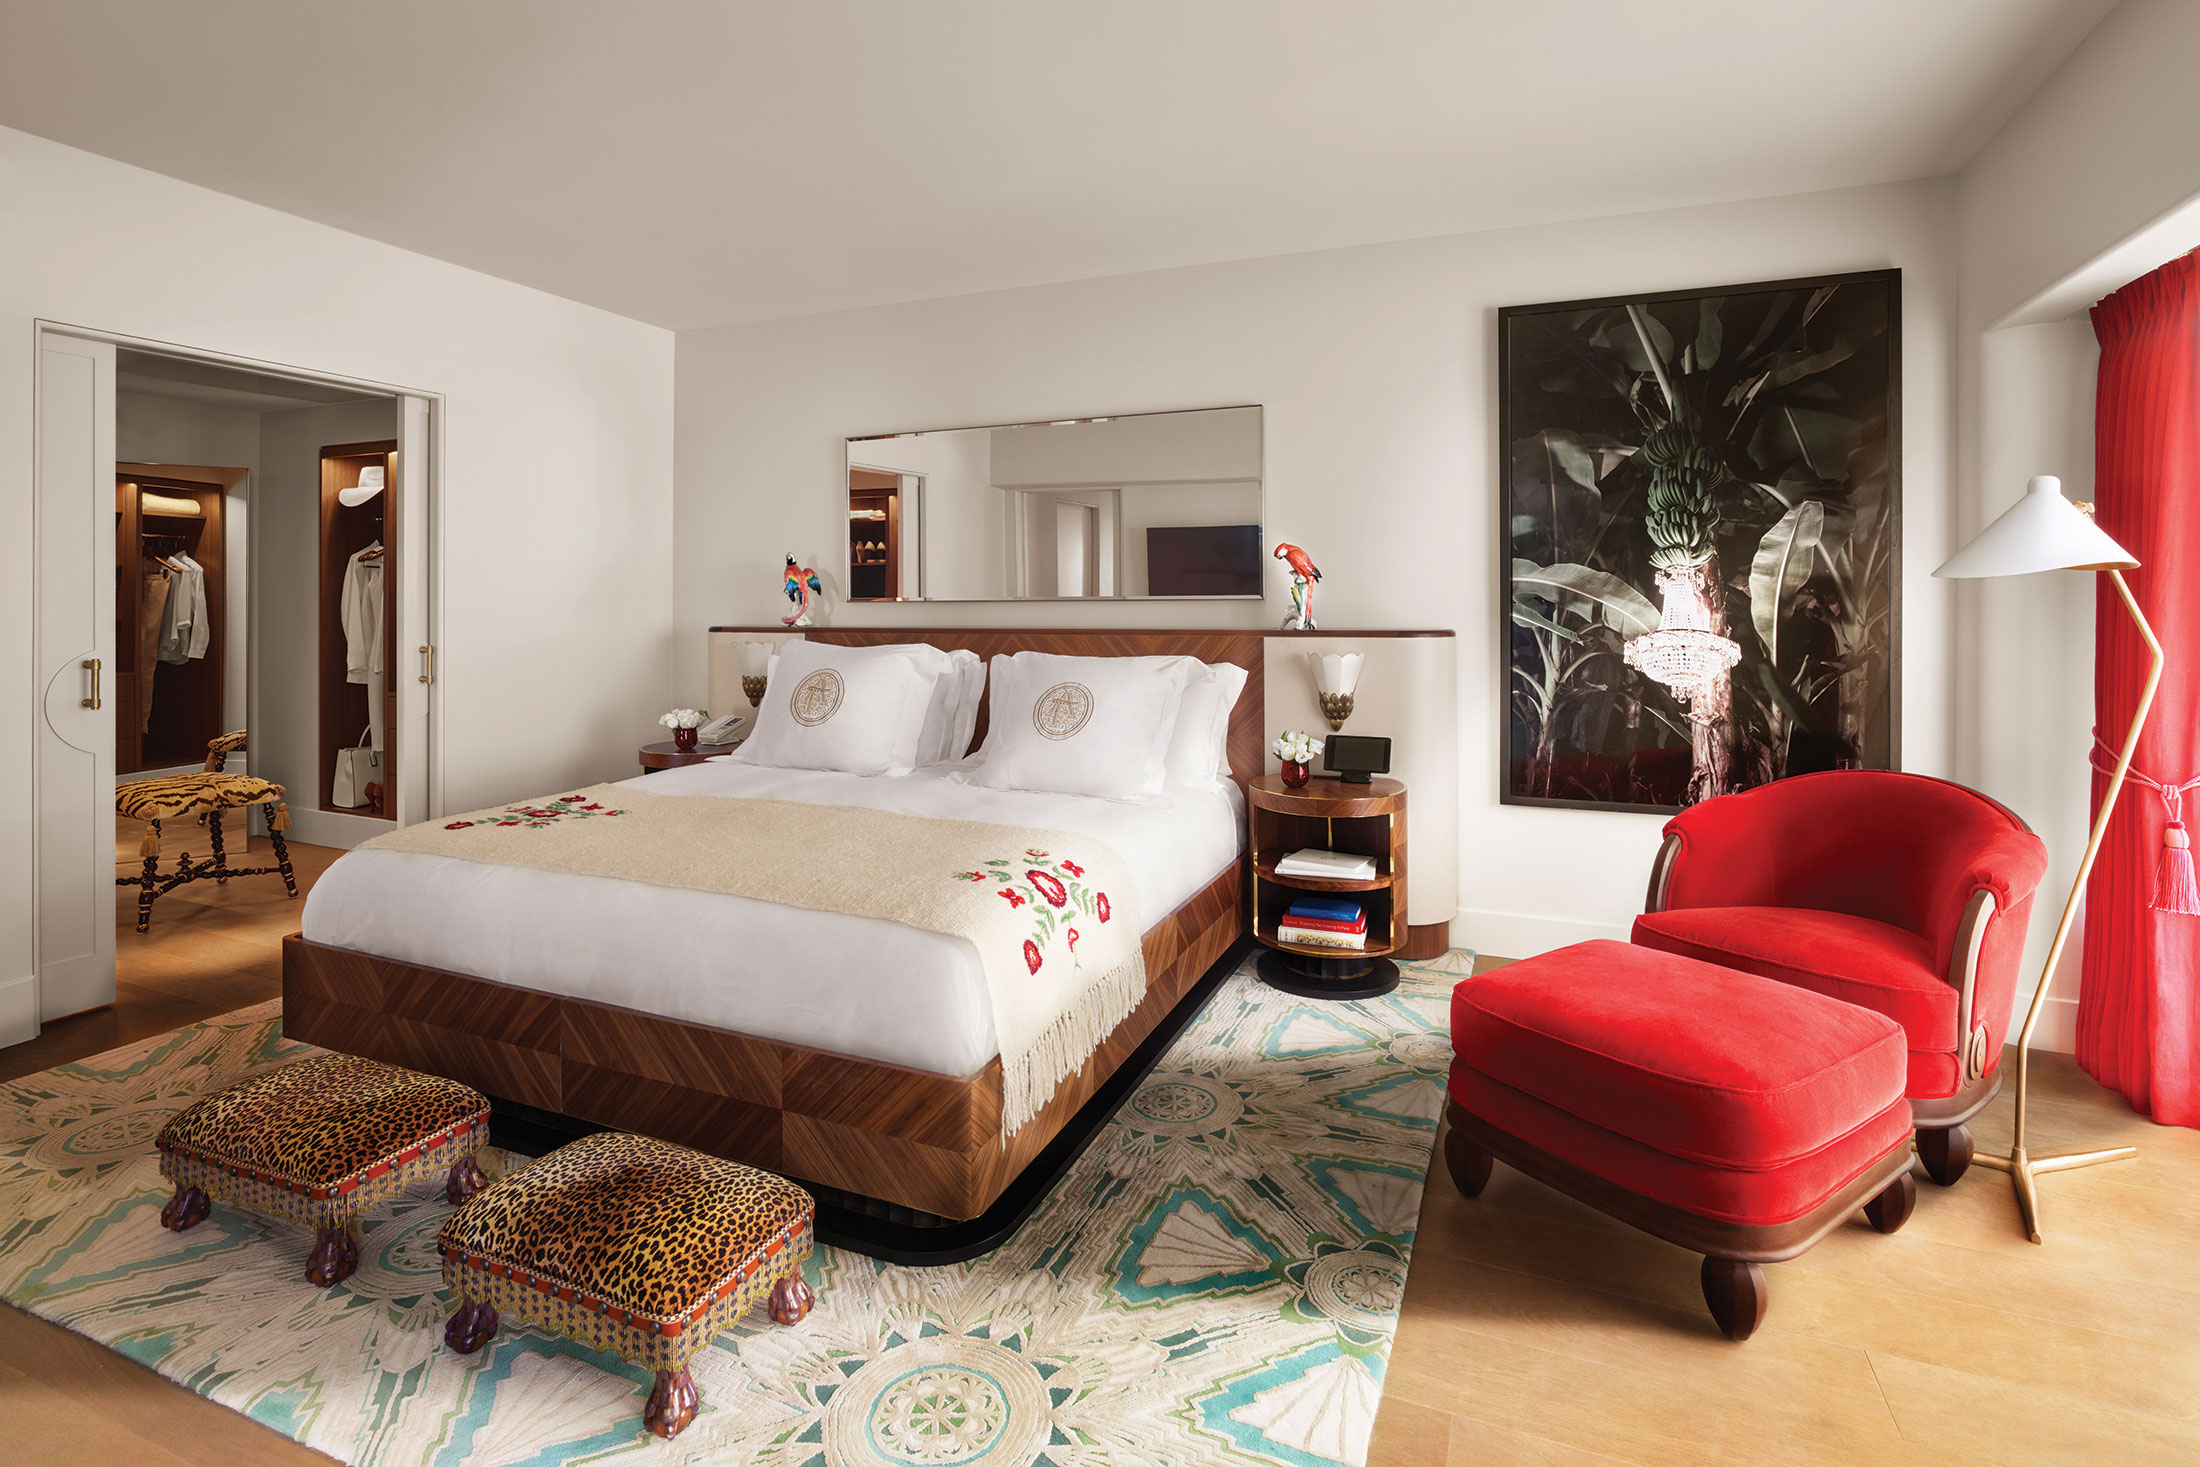 A suite with tropical flourishes. (Photo: Courtesy Faena Hotel Miami Beach)